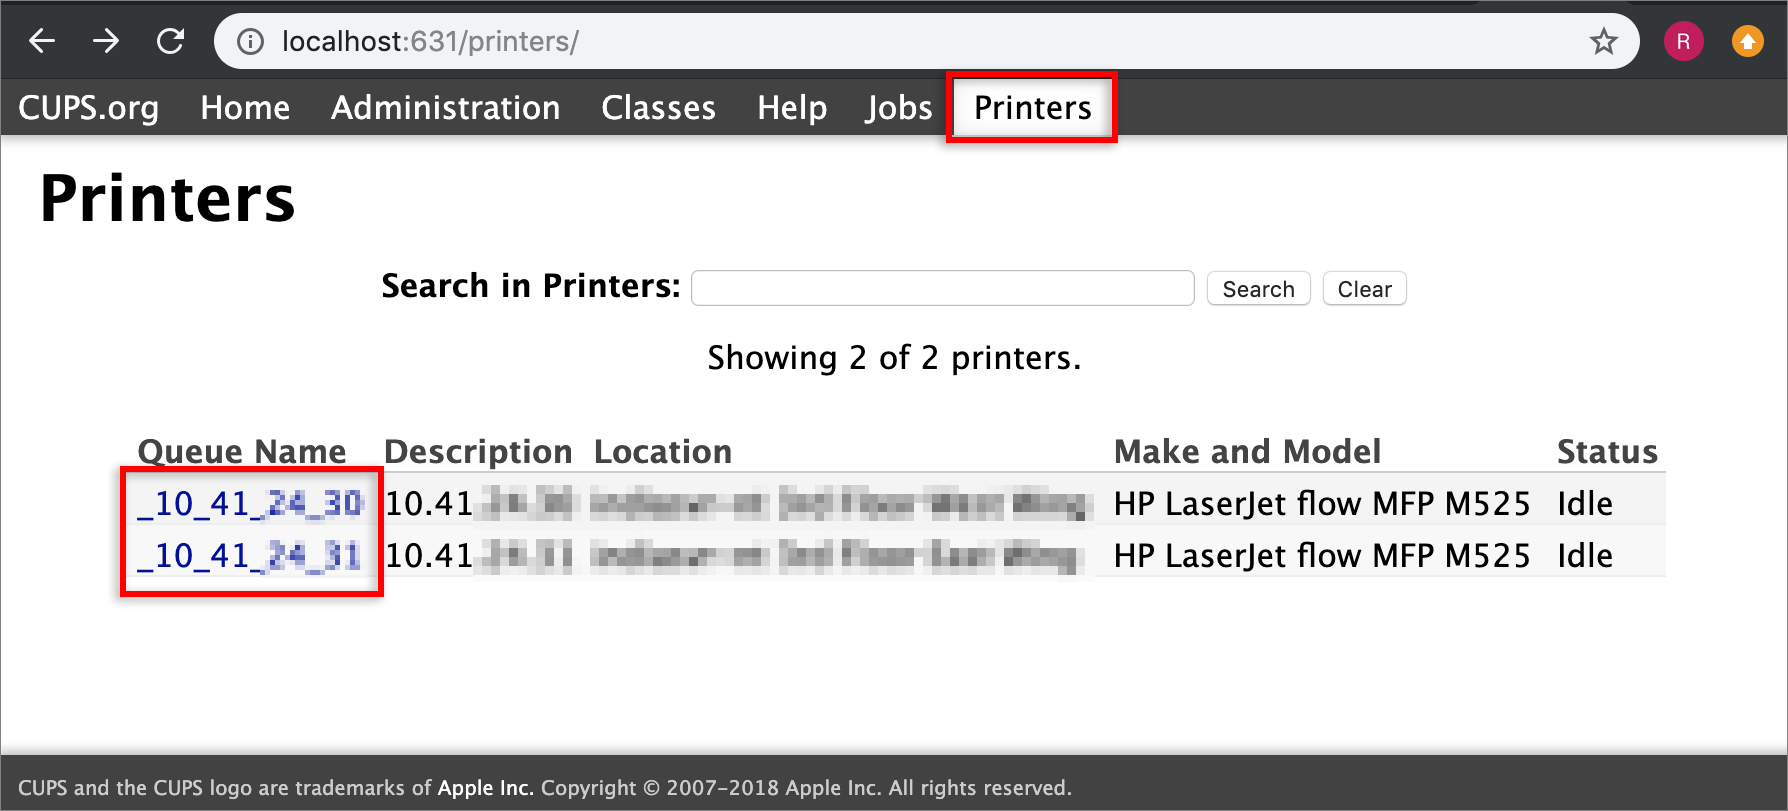 Print double-sided | Adobe Acrobat, Reader DC